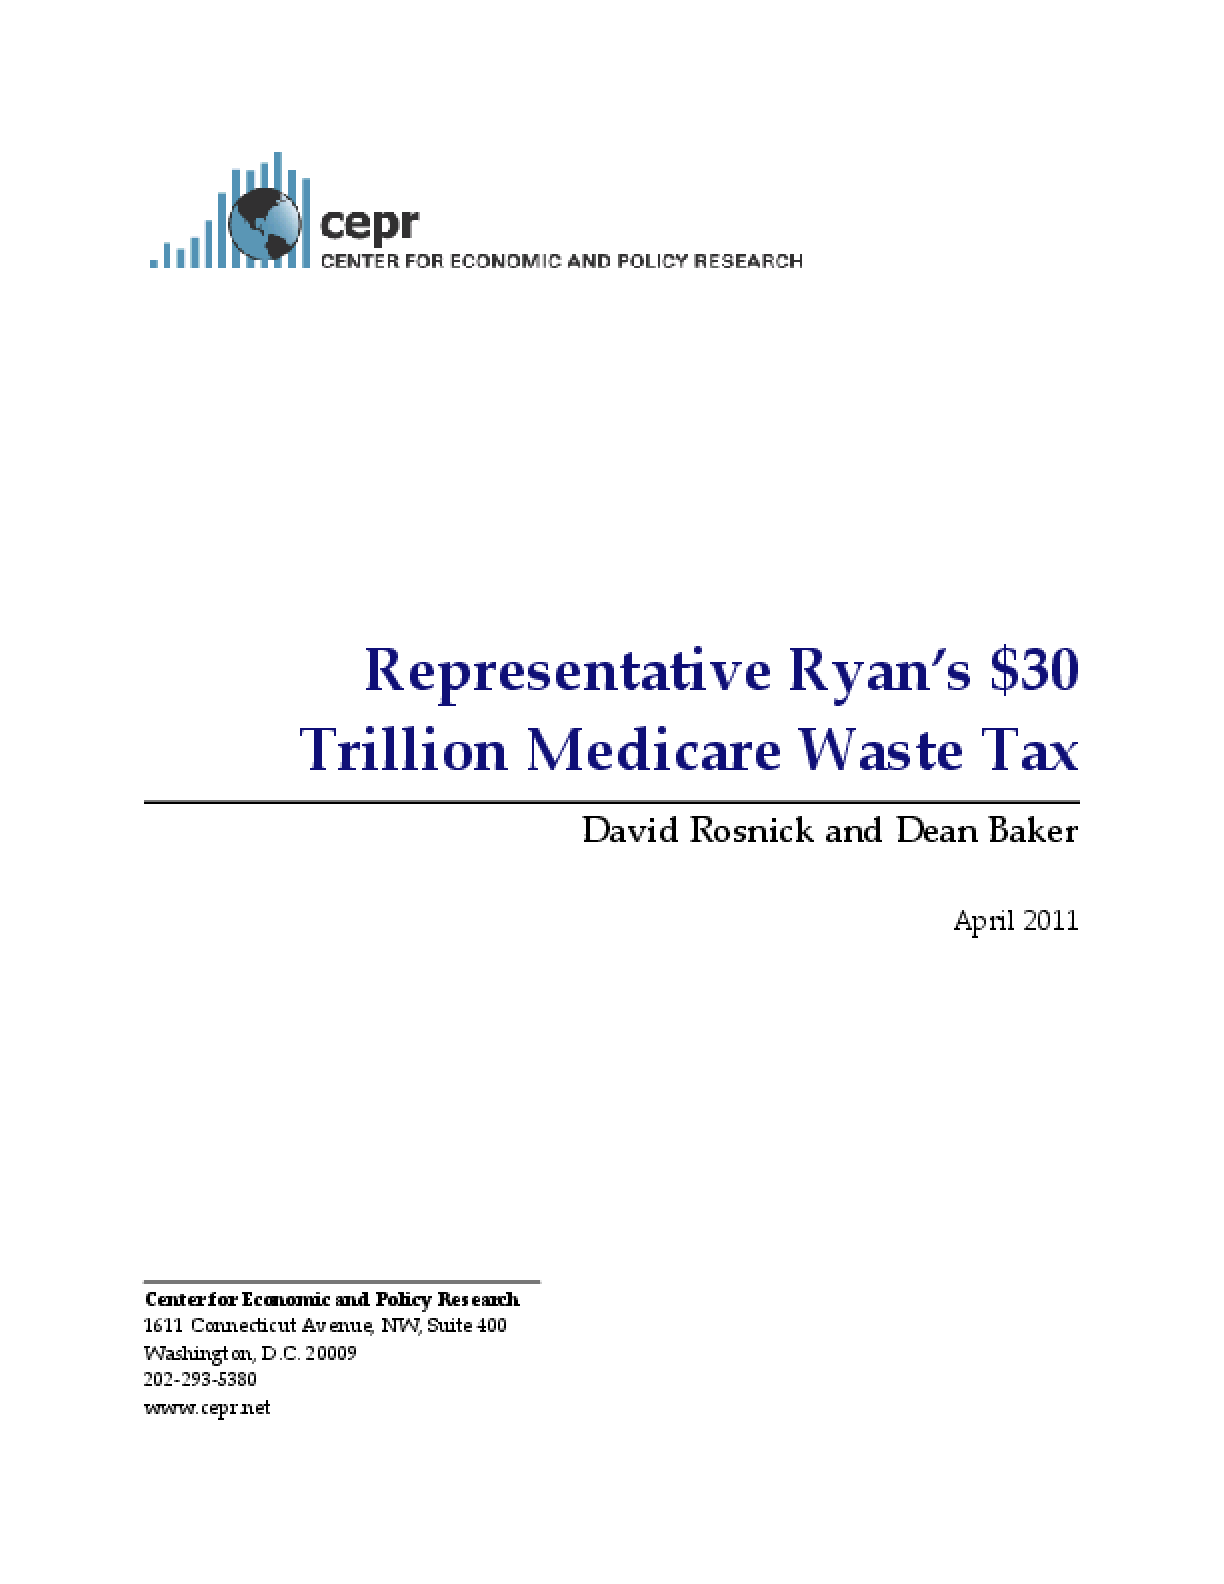 Representative Ryan's $30 Trillion Medicare Waste Tax